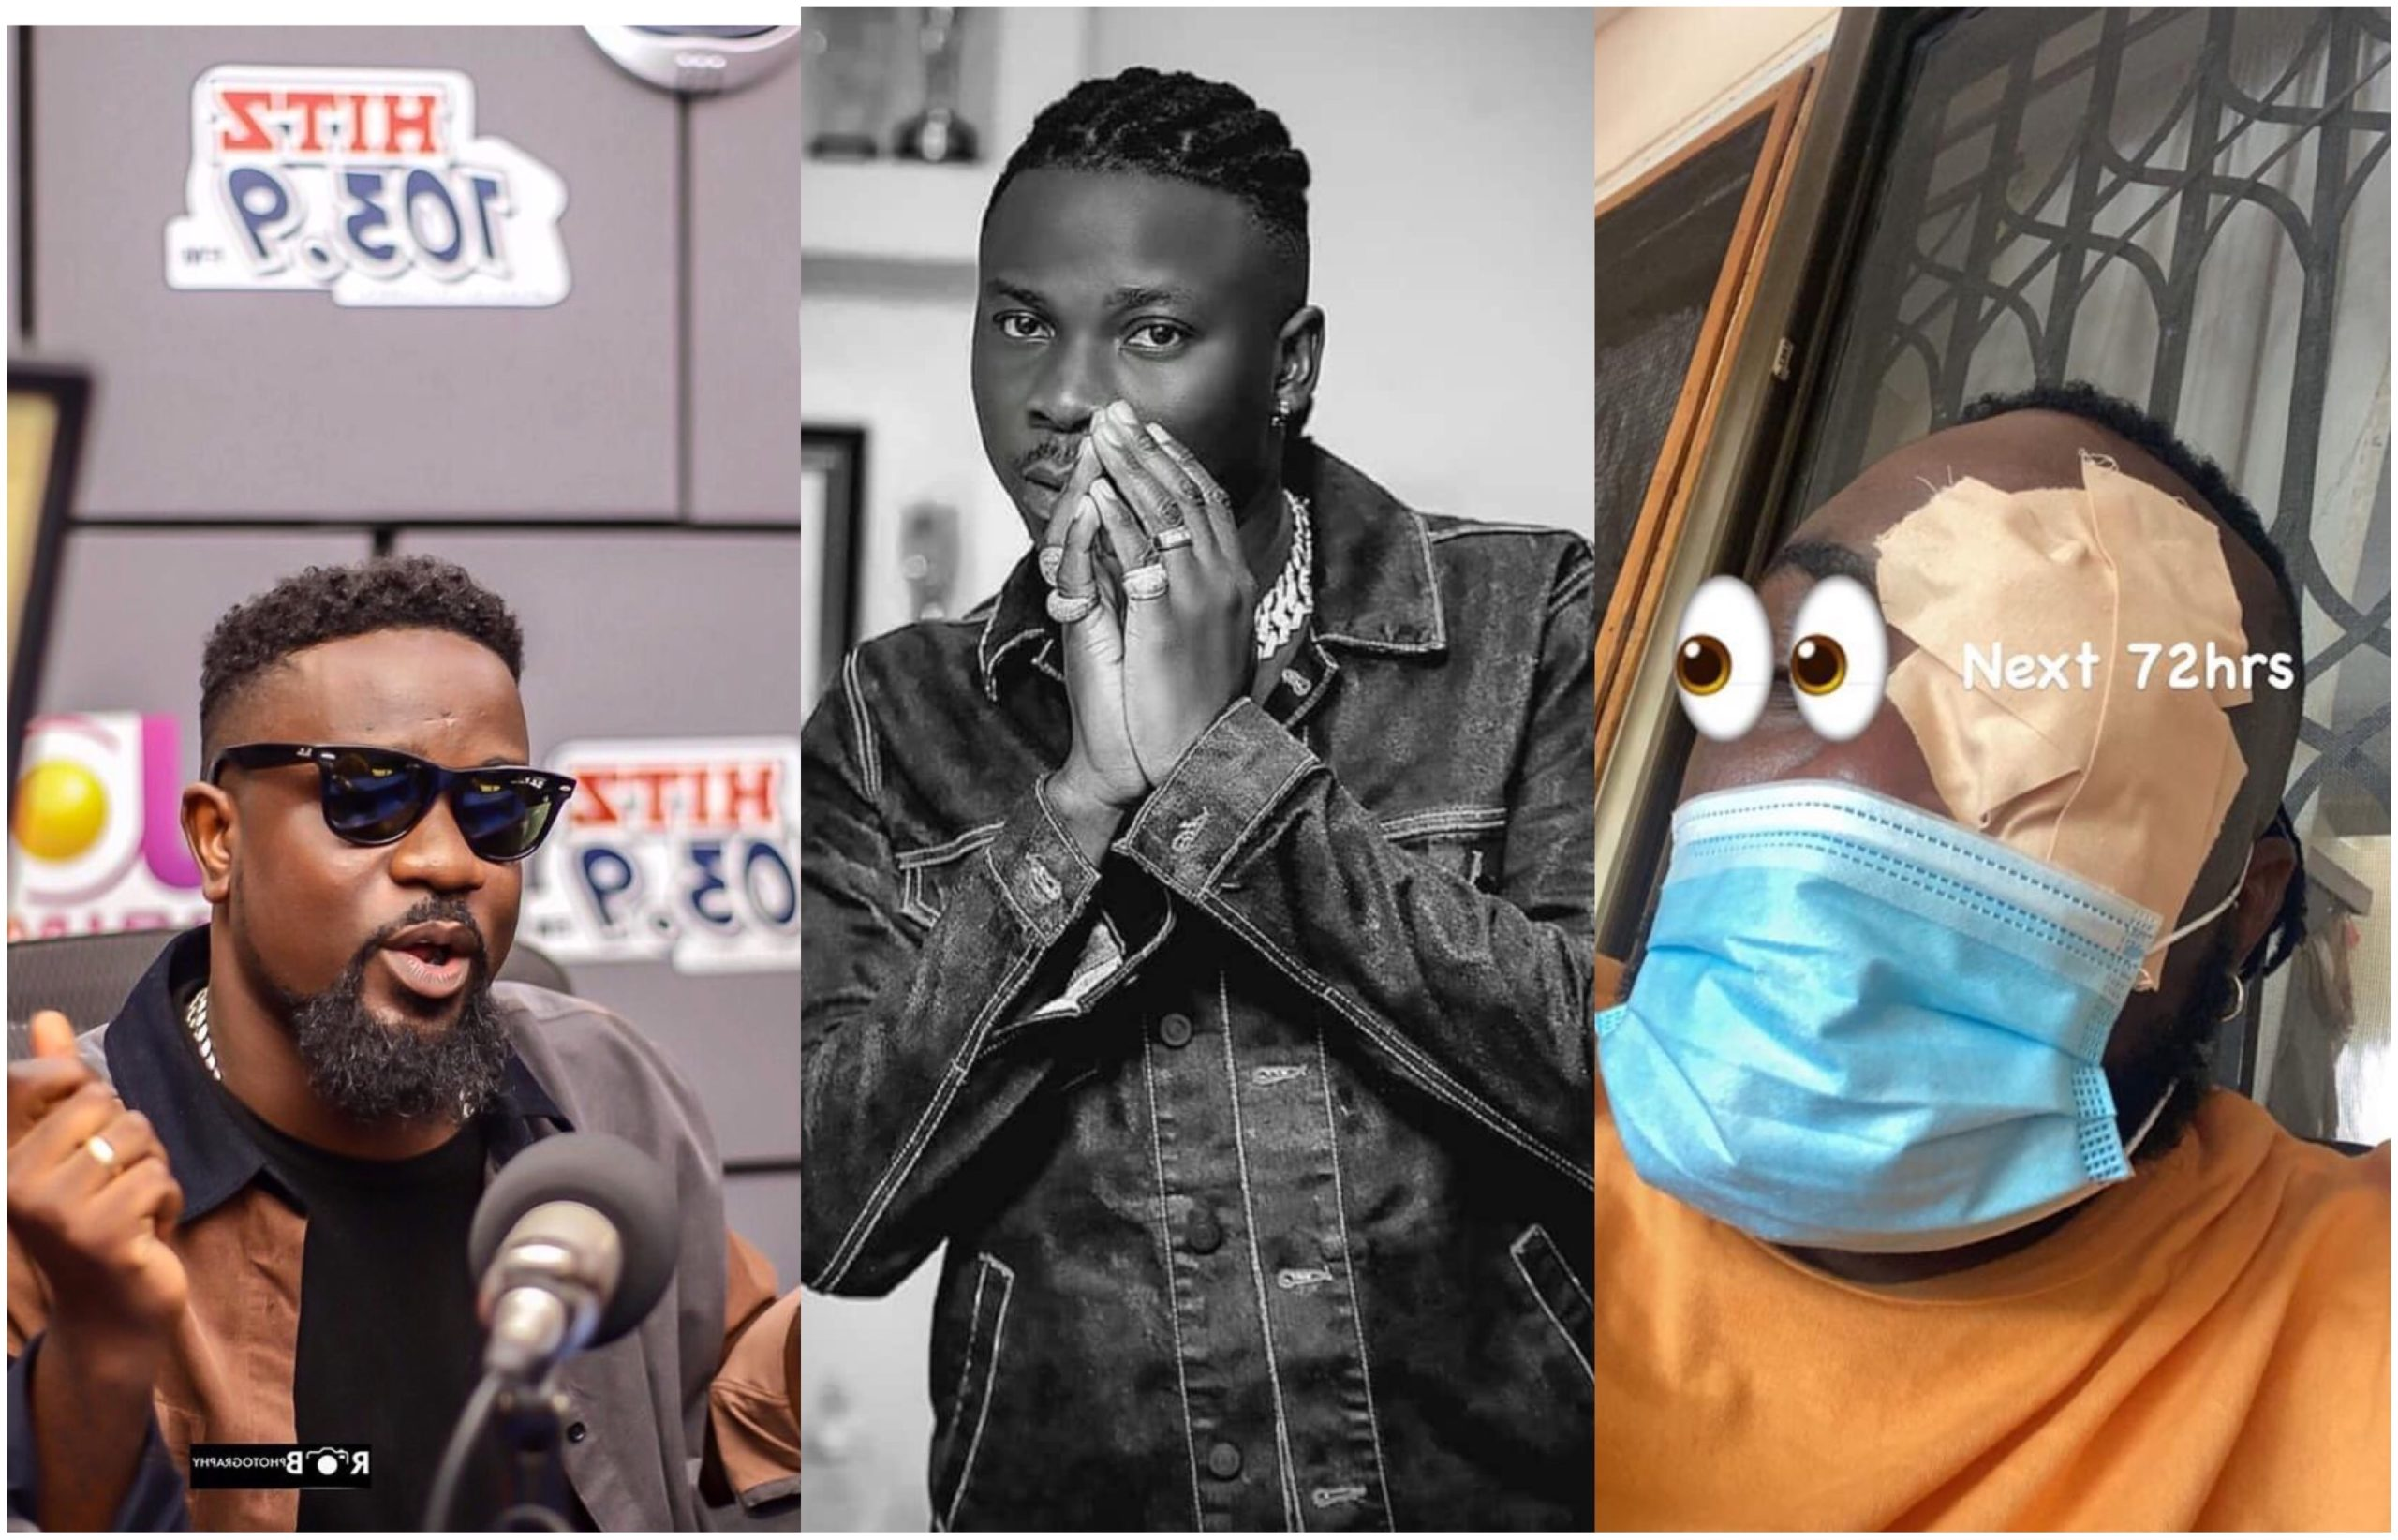 Sarkodie speaks for the first time after Stonebwoy damaged Angel's eye and reportedly pulled a gun in new photo